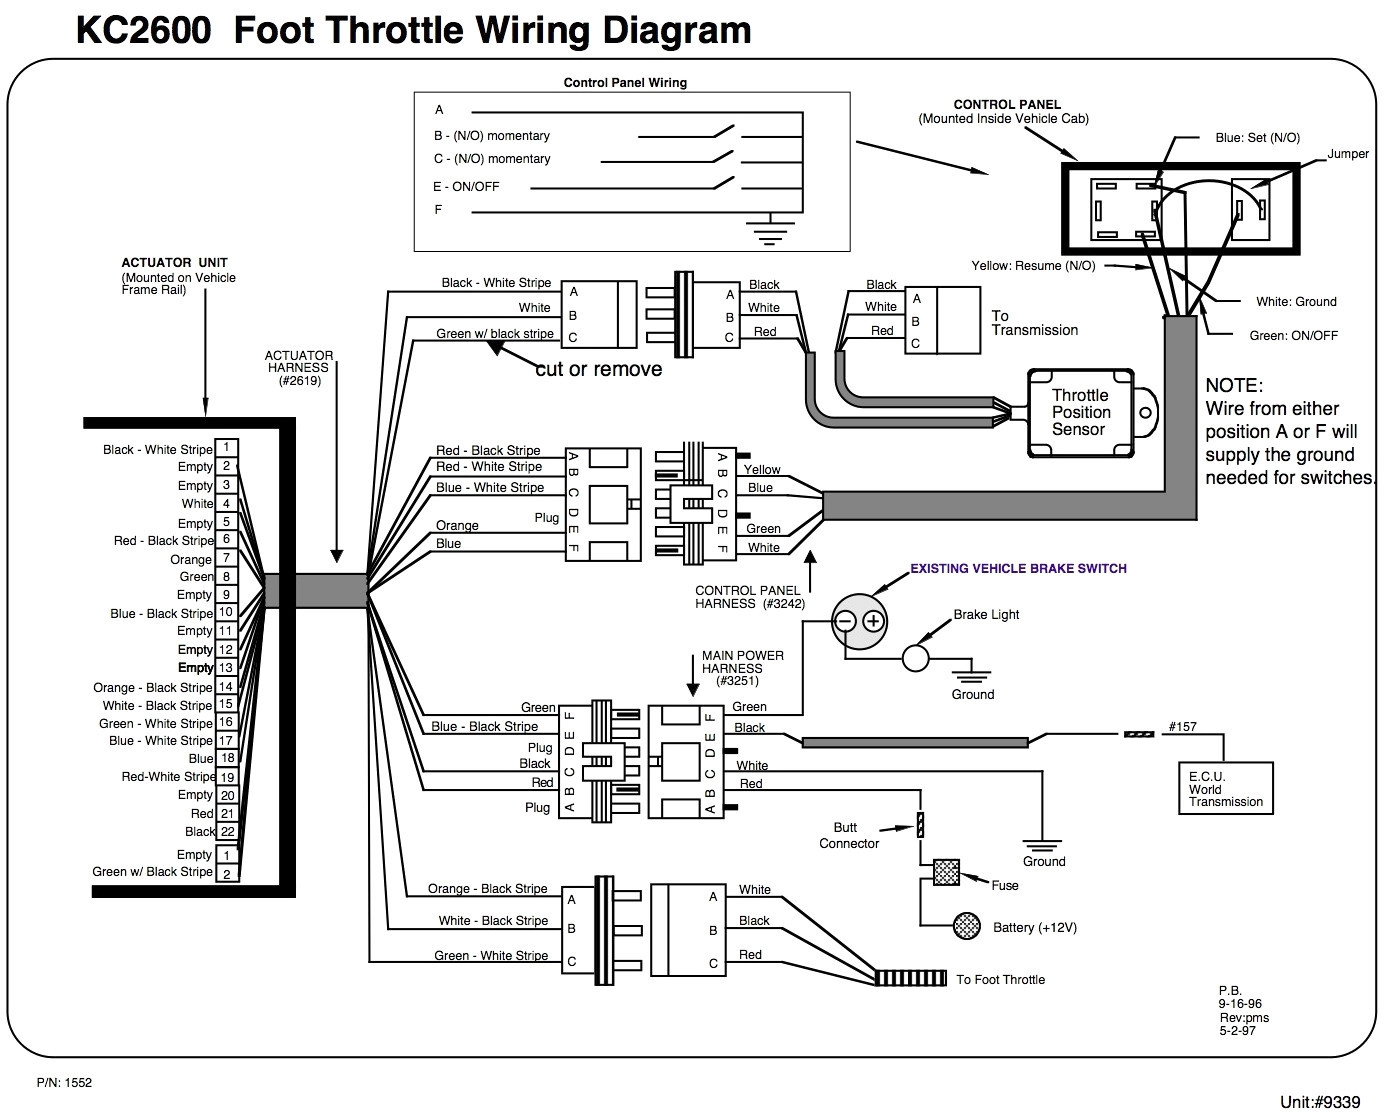 [QNCB_7524]  3000 4000 Allison Transmission Wiring Diagram -2005 Impala Radio Wiring  Diagram | Begeboy Wiring Diagram Source | Allison Gen 4 Wiring Diagrams |  | Begeboy Wiring Diagram Source